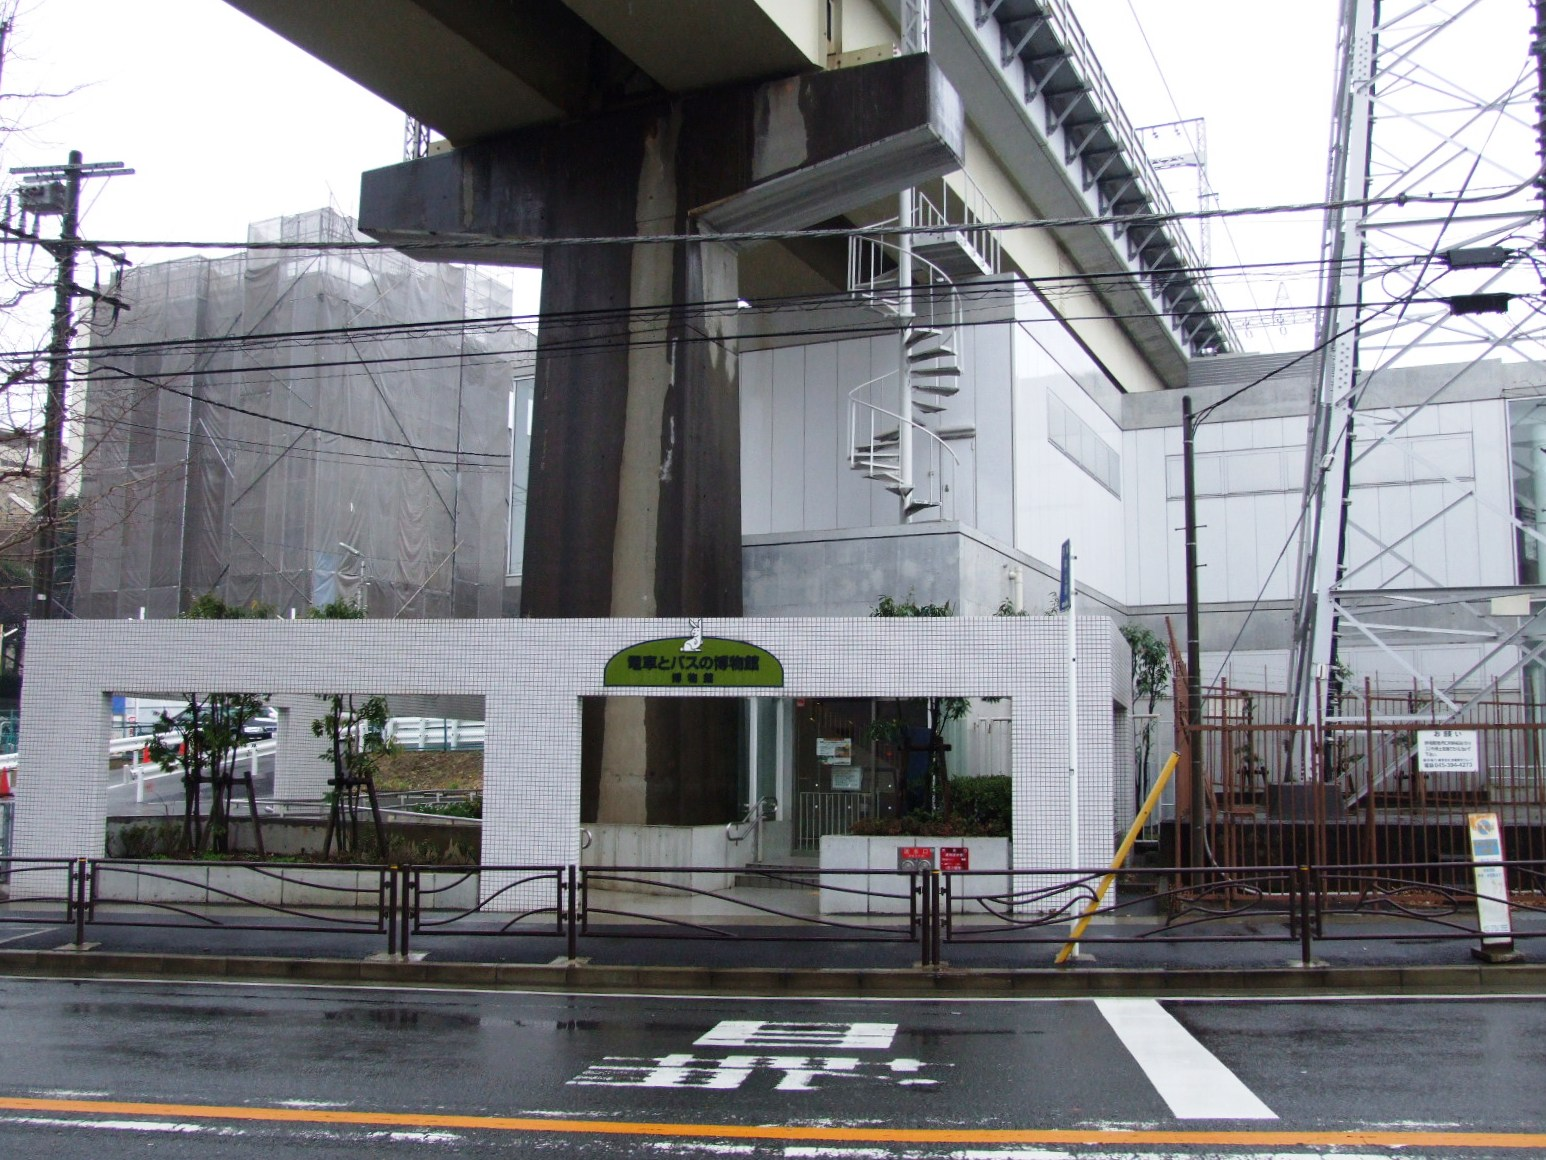 https://upload.wikimedia.org/wikipedia/commons/d/d7/Tokyu_Train_and_Bus_Museum.jpg